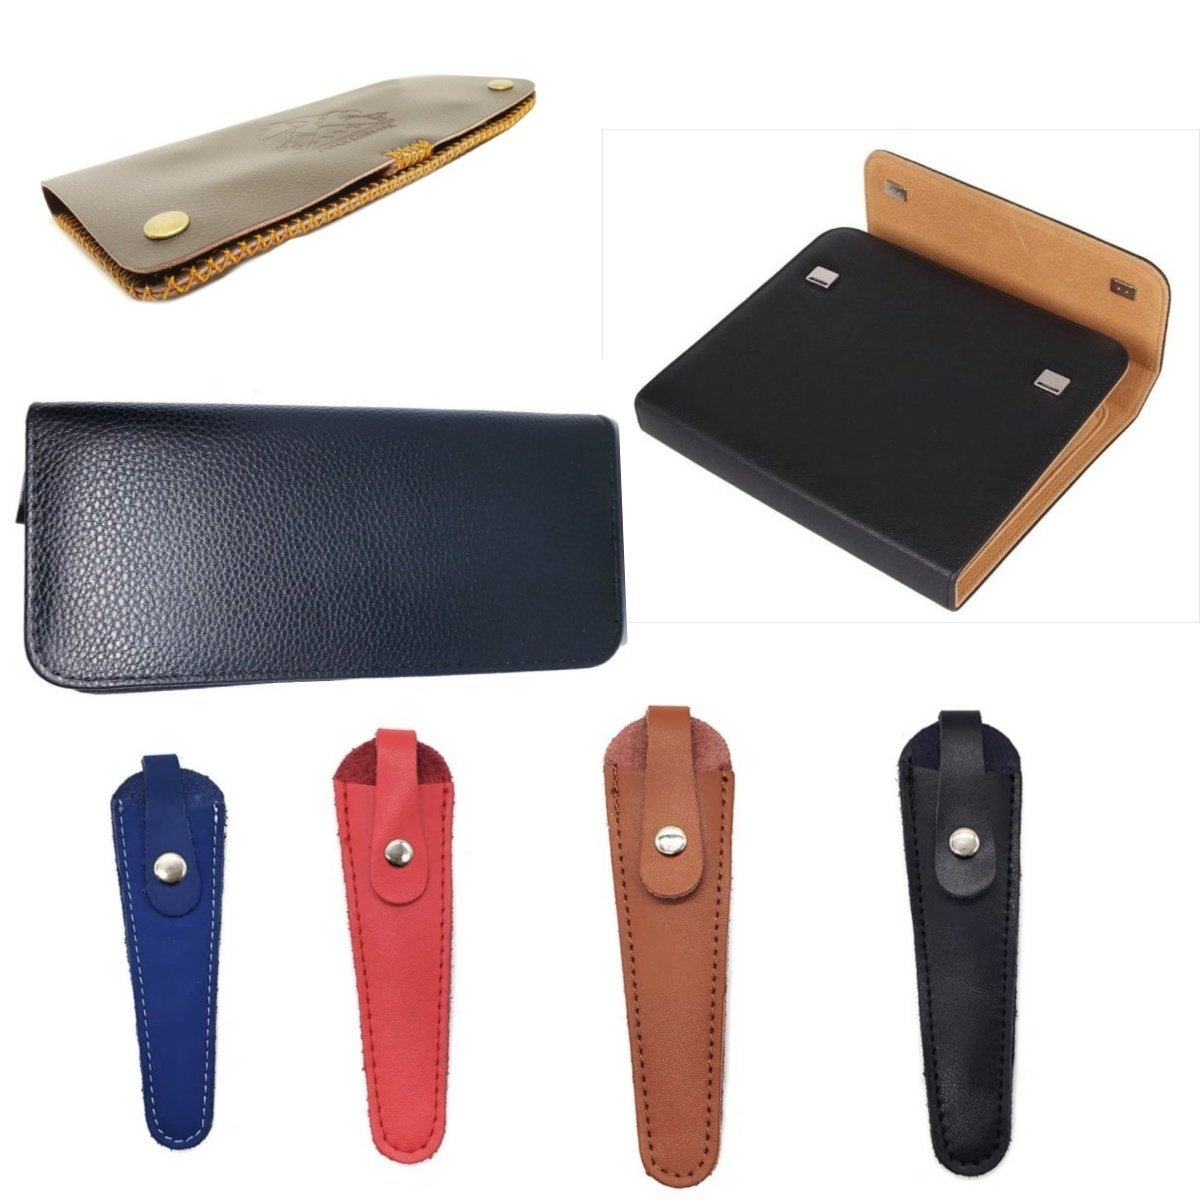 The Top 10 Best Scissor Cases & Pouches | Japan Scissors